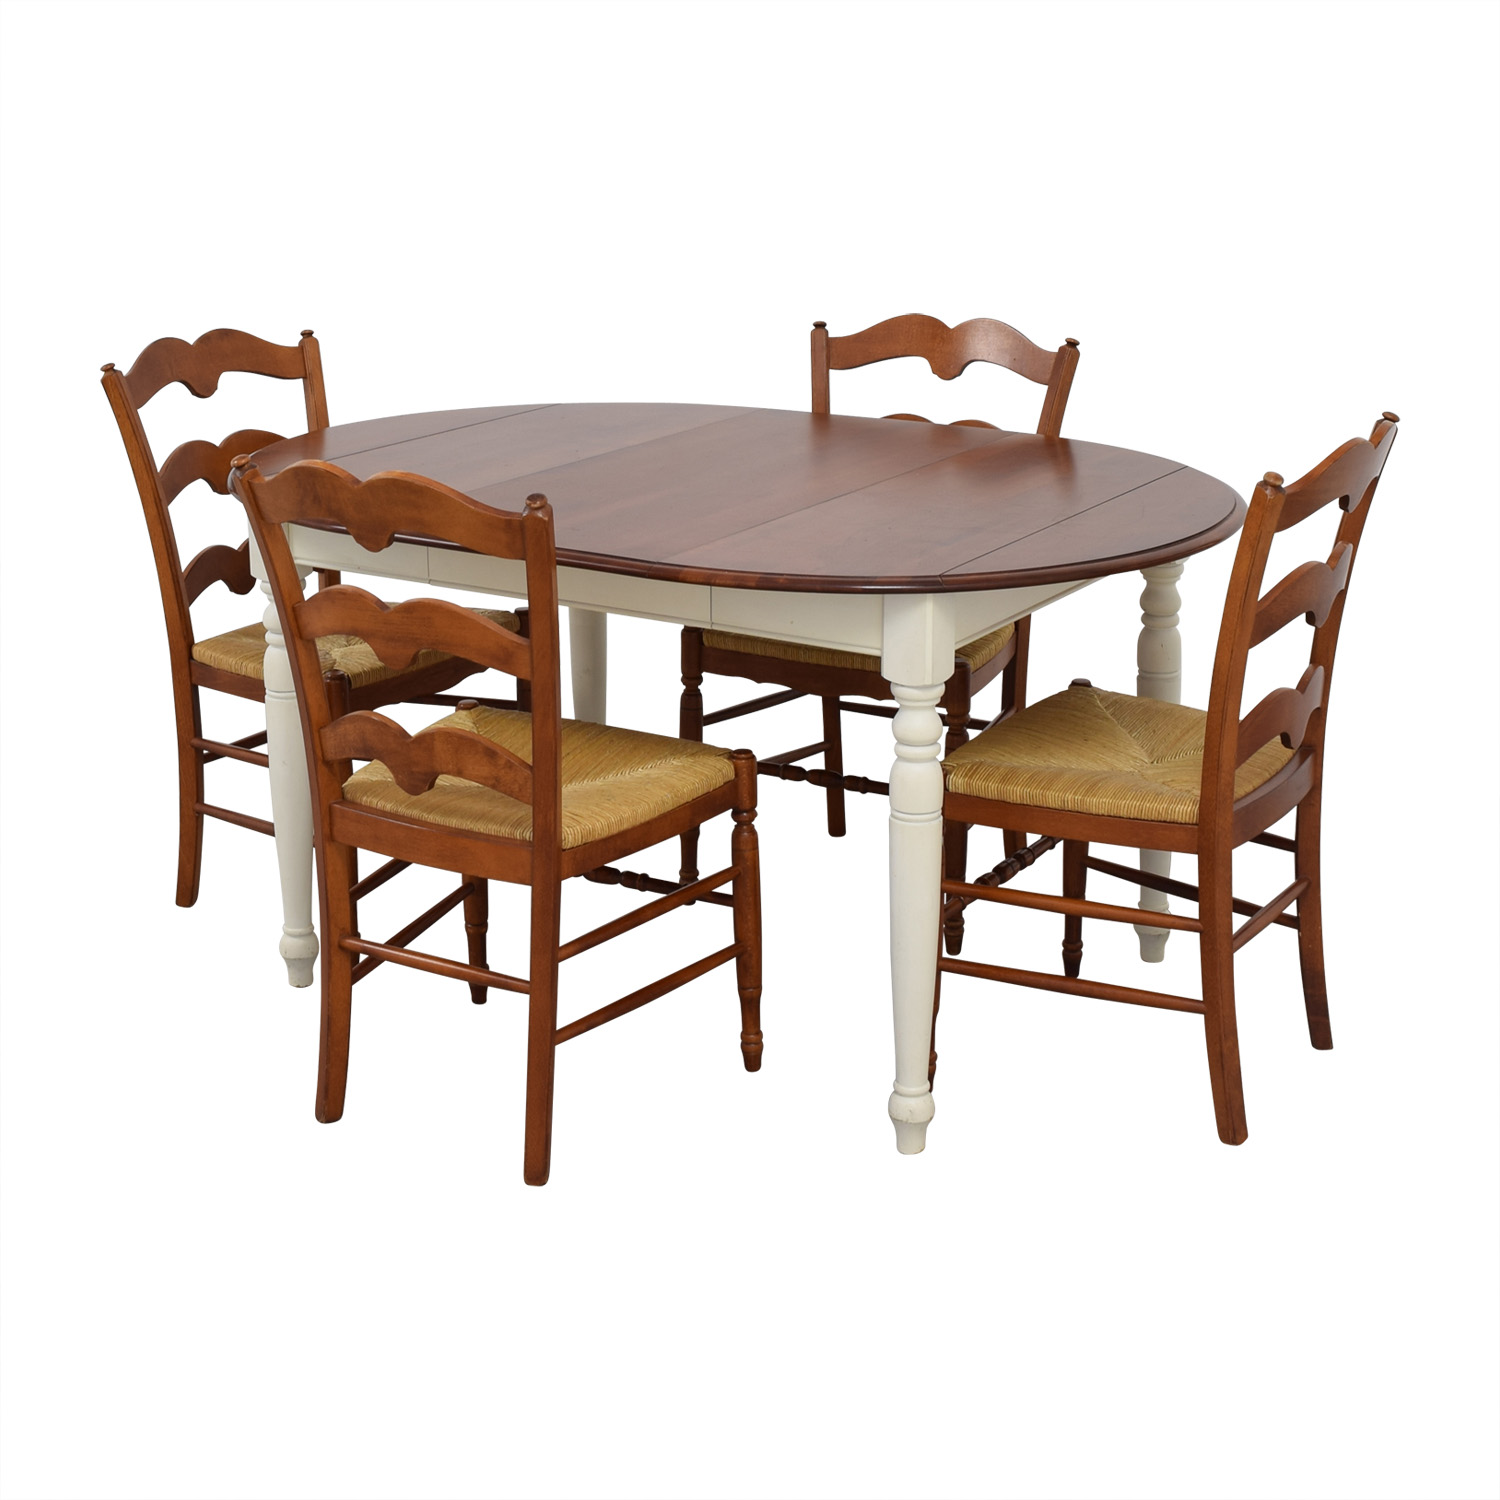 Multicolored Wooden Dining Set with Leaf Extension brown and white